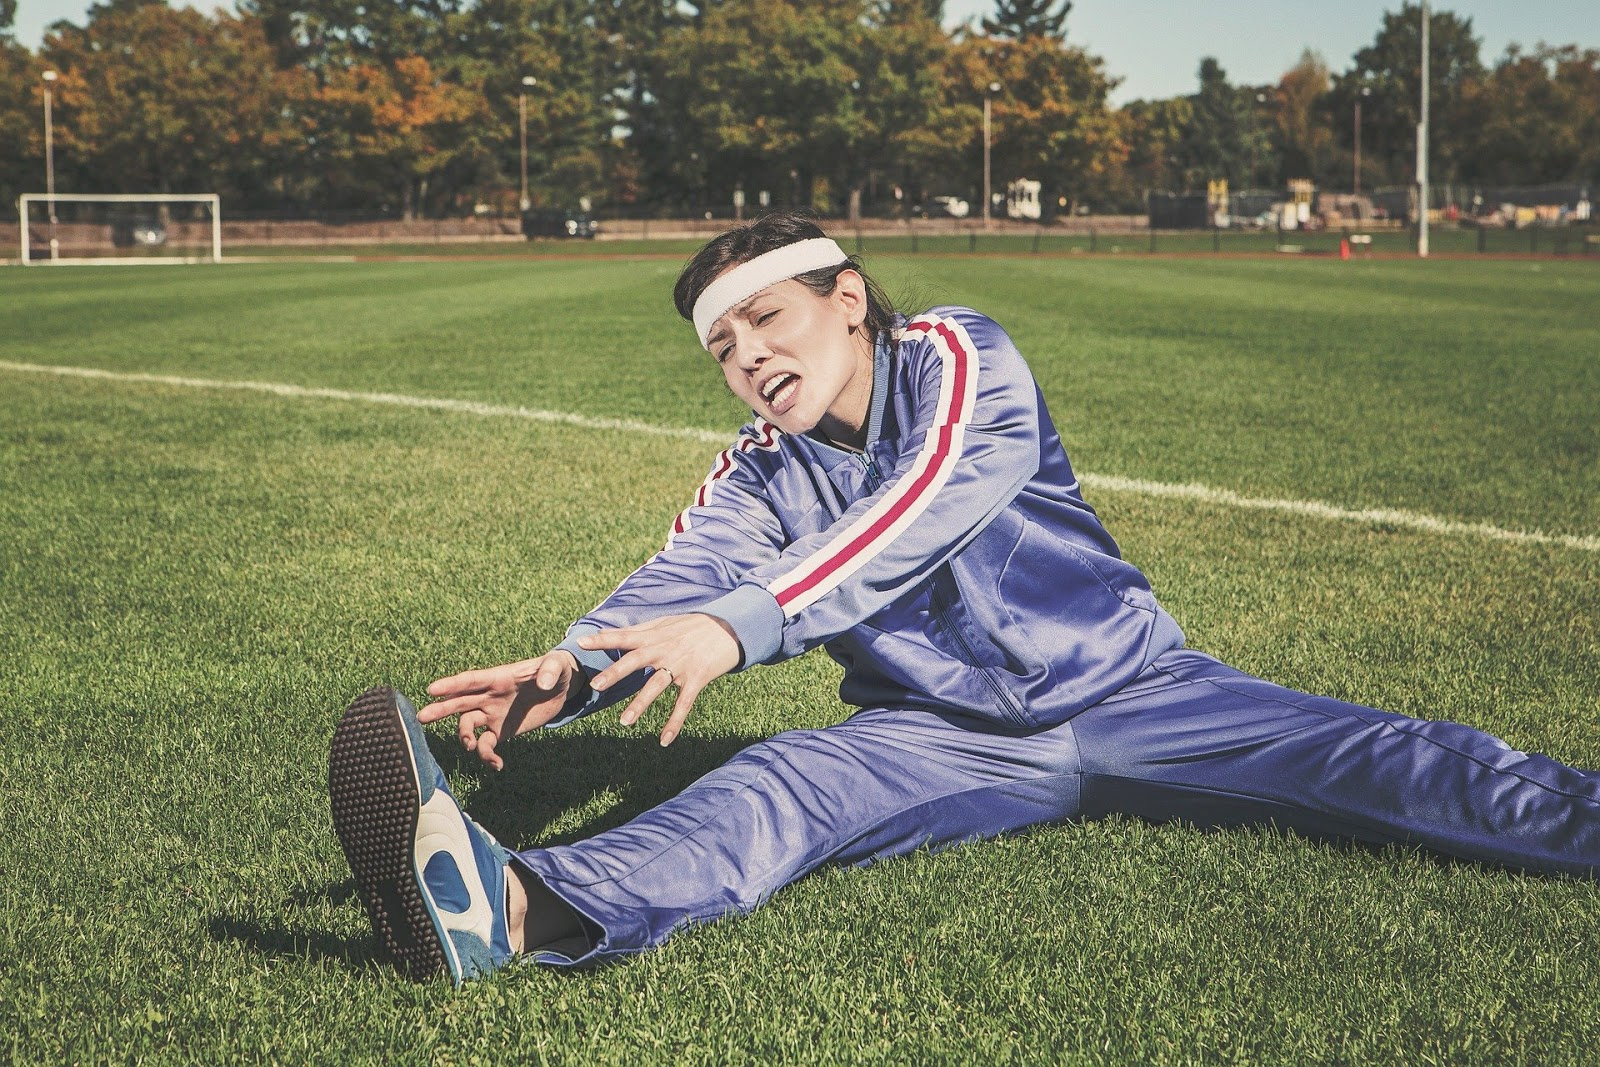 Stretching is important for athletes